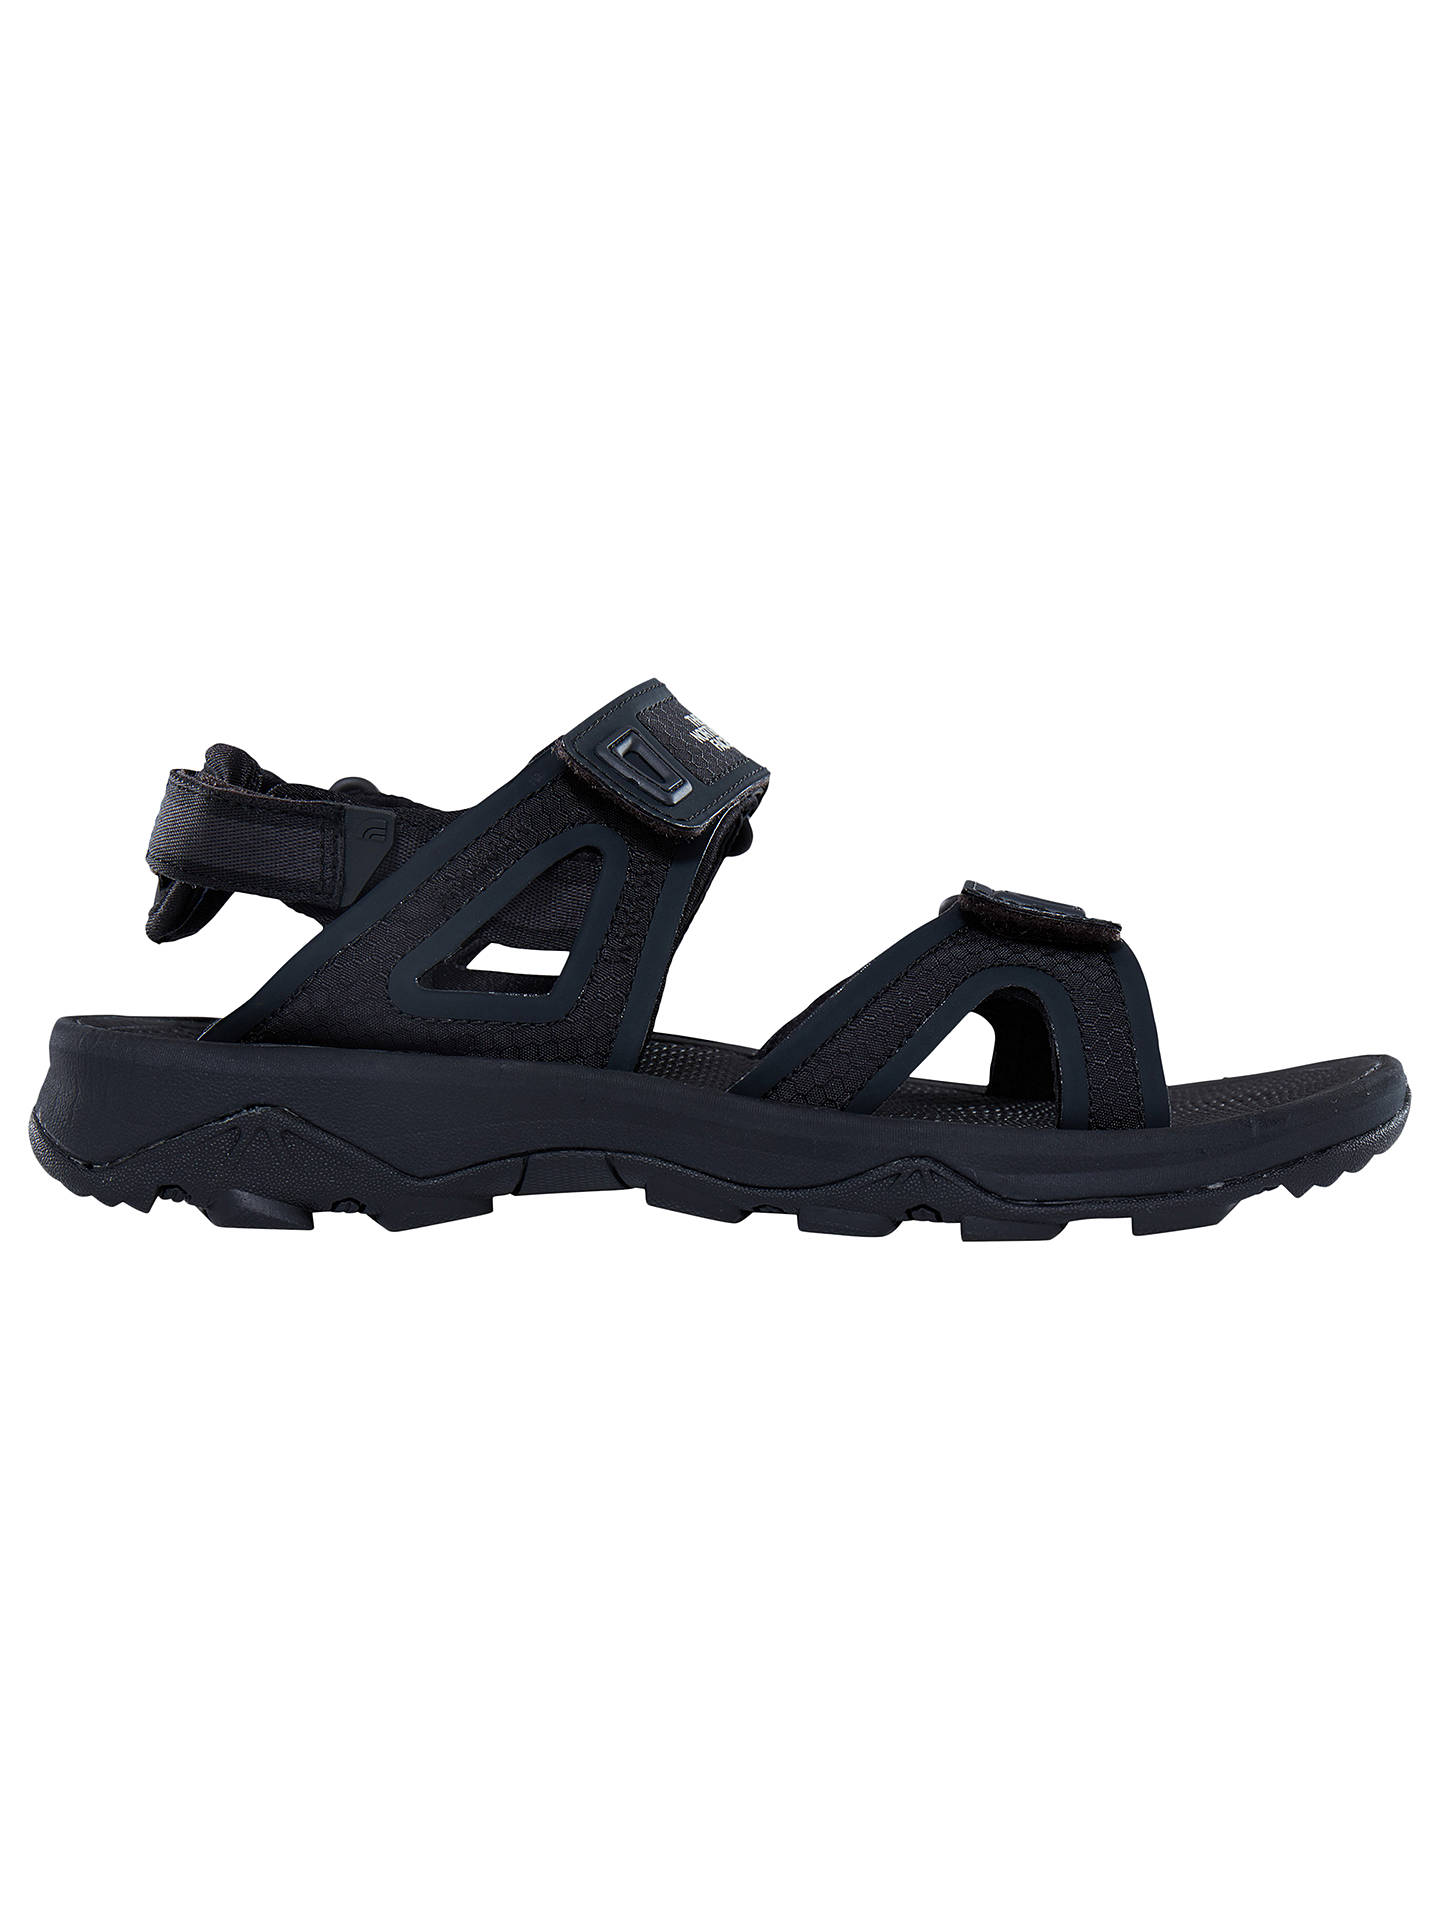 46c3fe0d5 The North Face Hedgehog 2 Men's Walking Sandals, Black/White at John ...